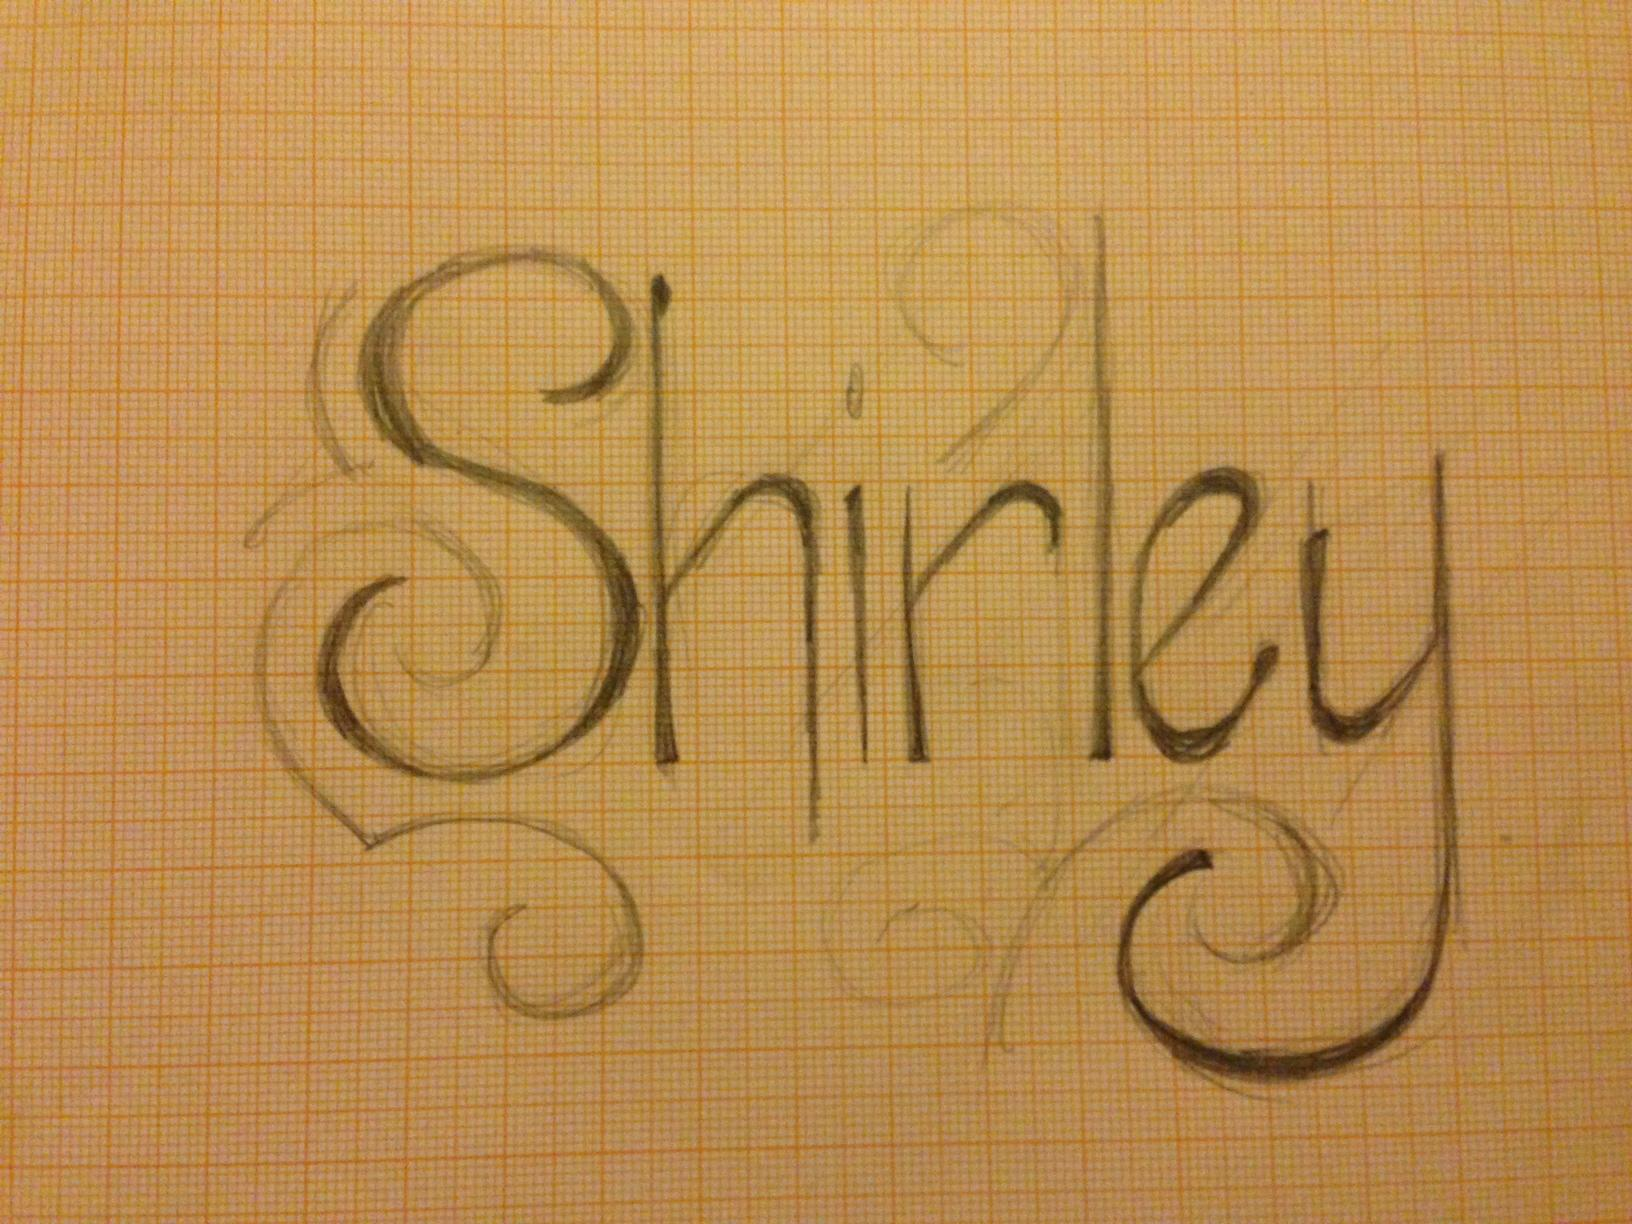 Stop calling me Shirley - image 1 - student project